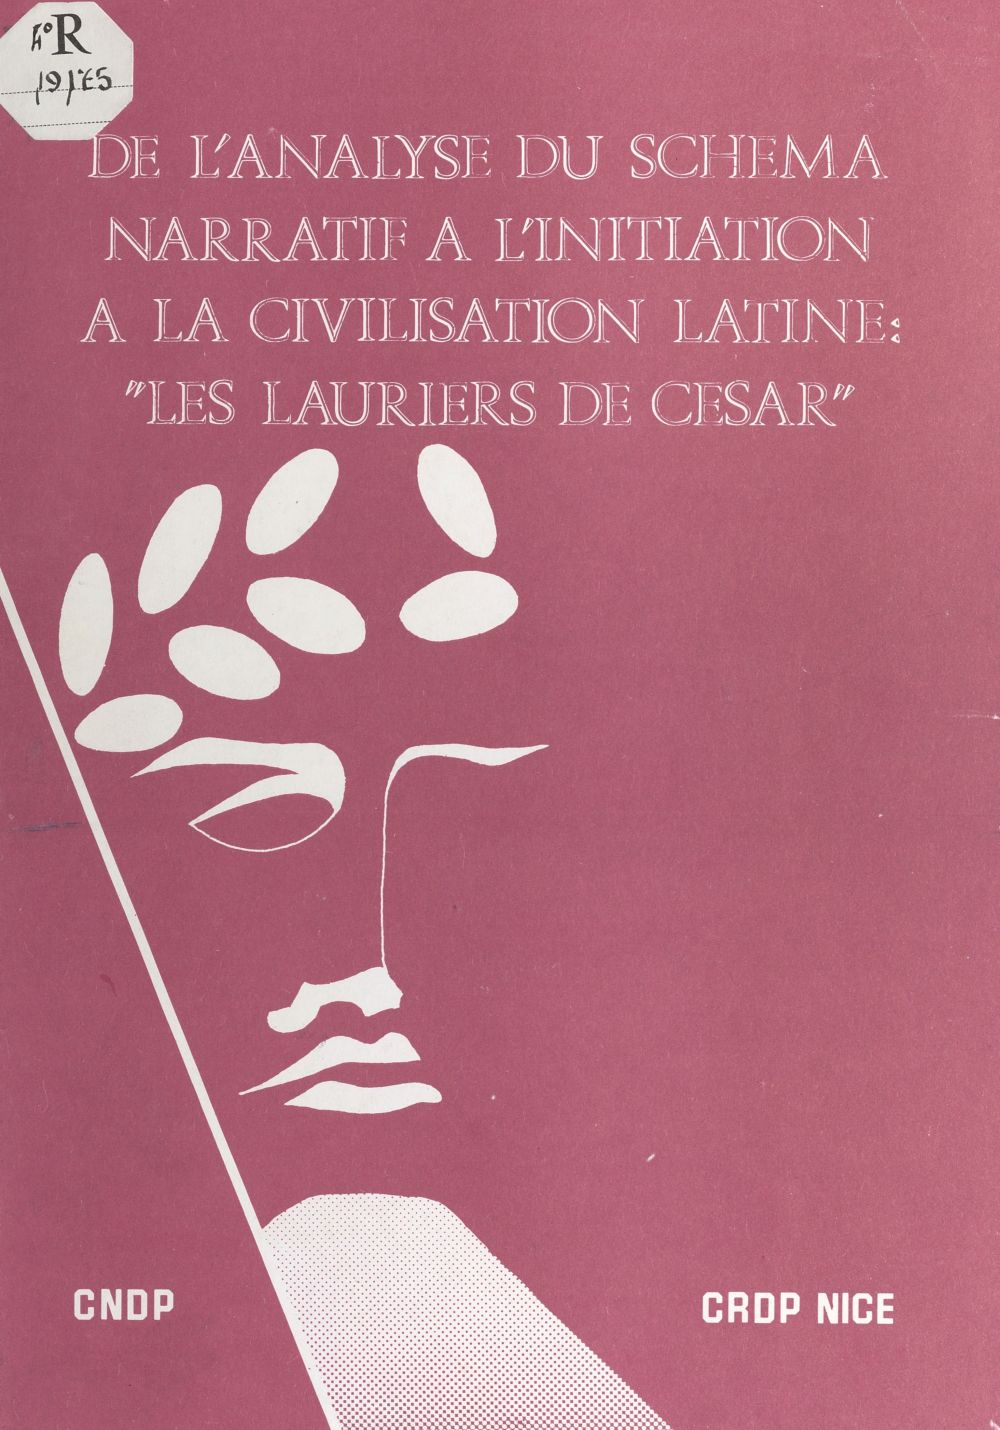 De l'analyse du schéma narratif à l'initiation à la civilisation latine : Les lauriers de César